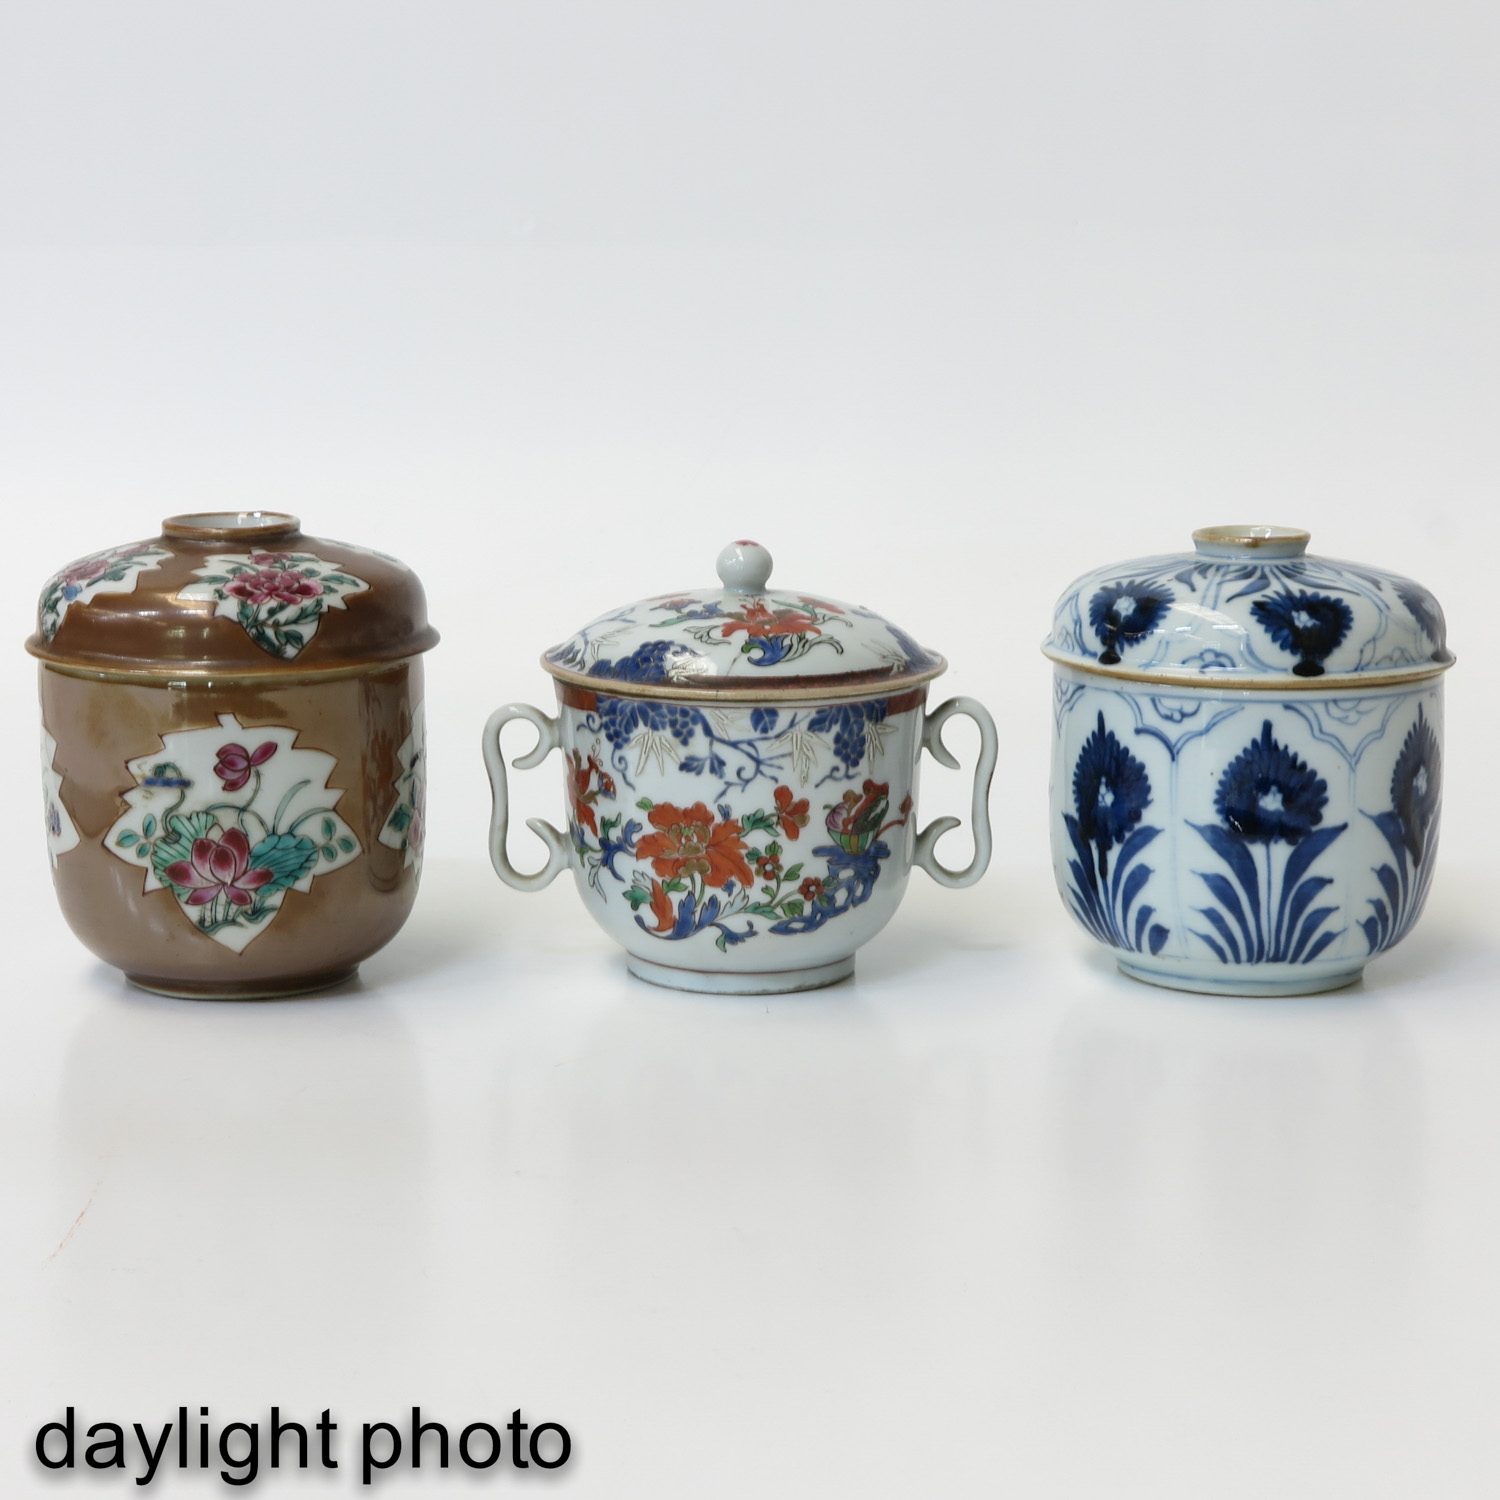 A Collection of 3 Covered Jars - Image 7 of 9